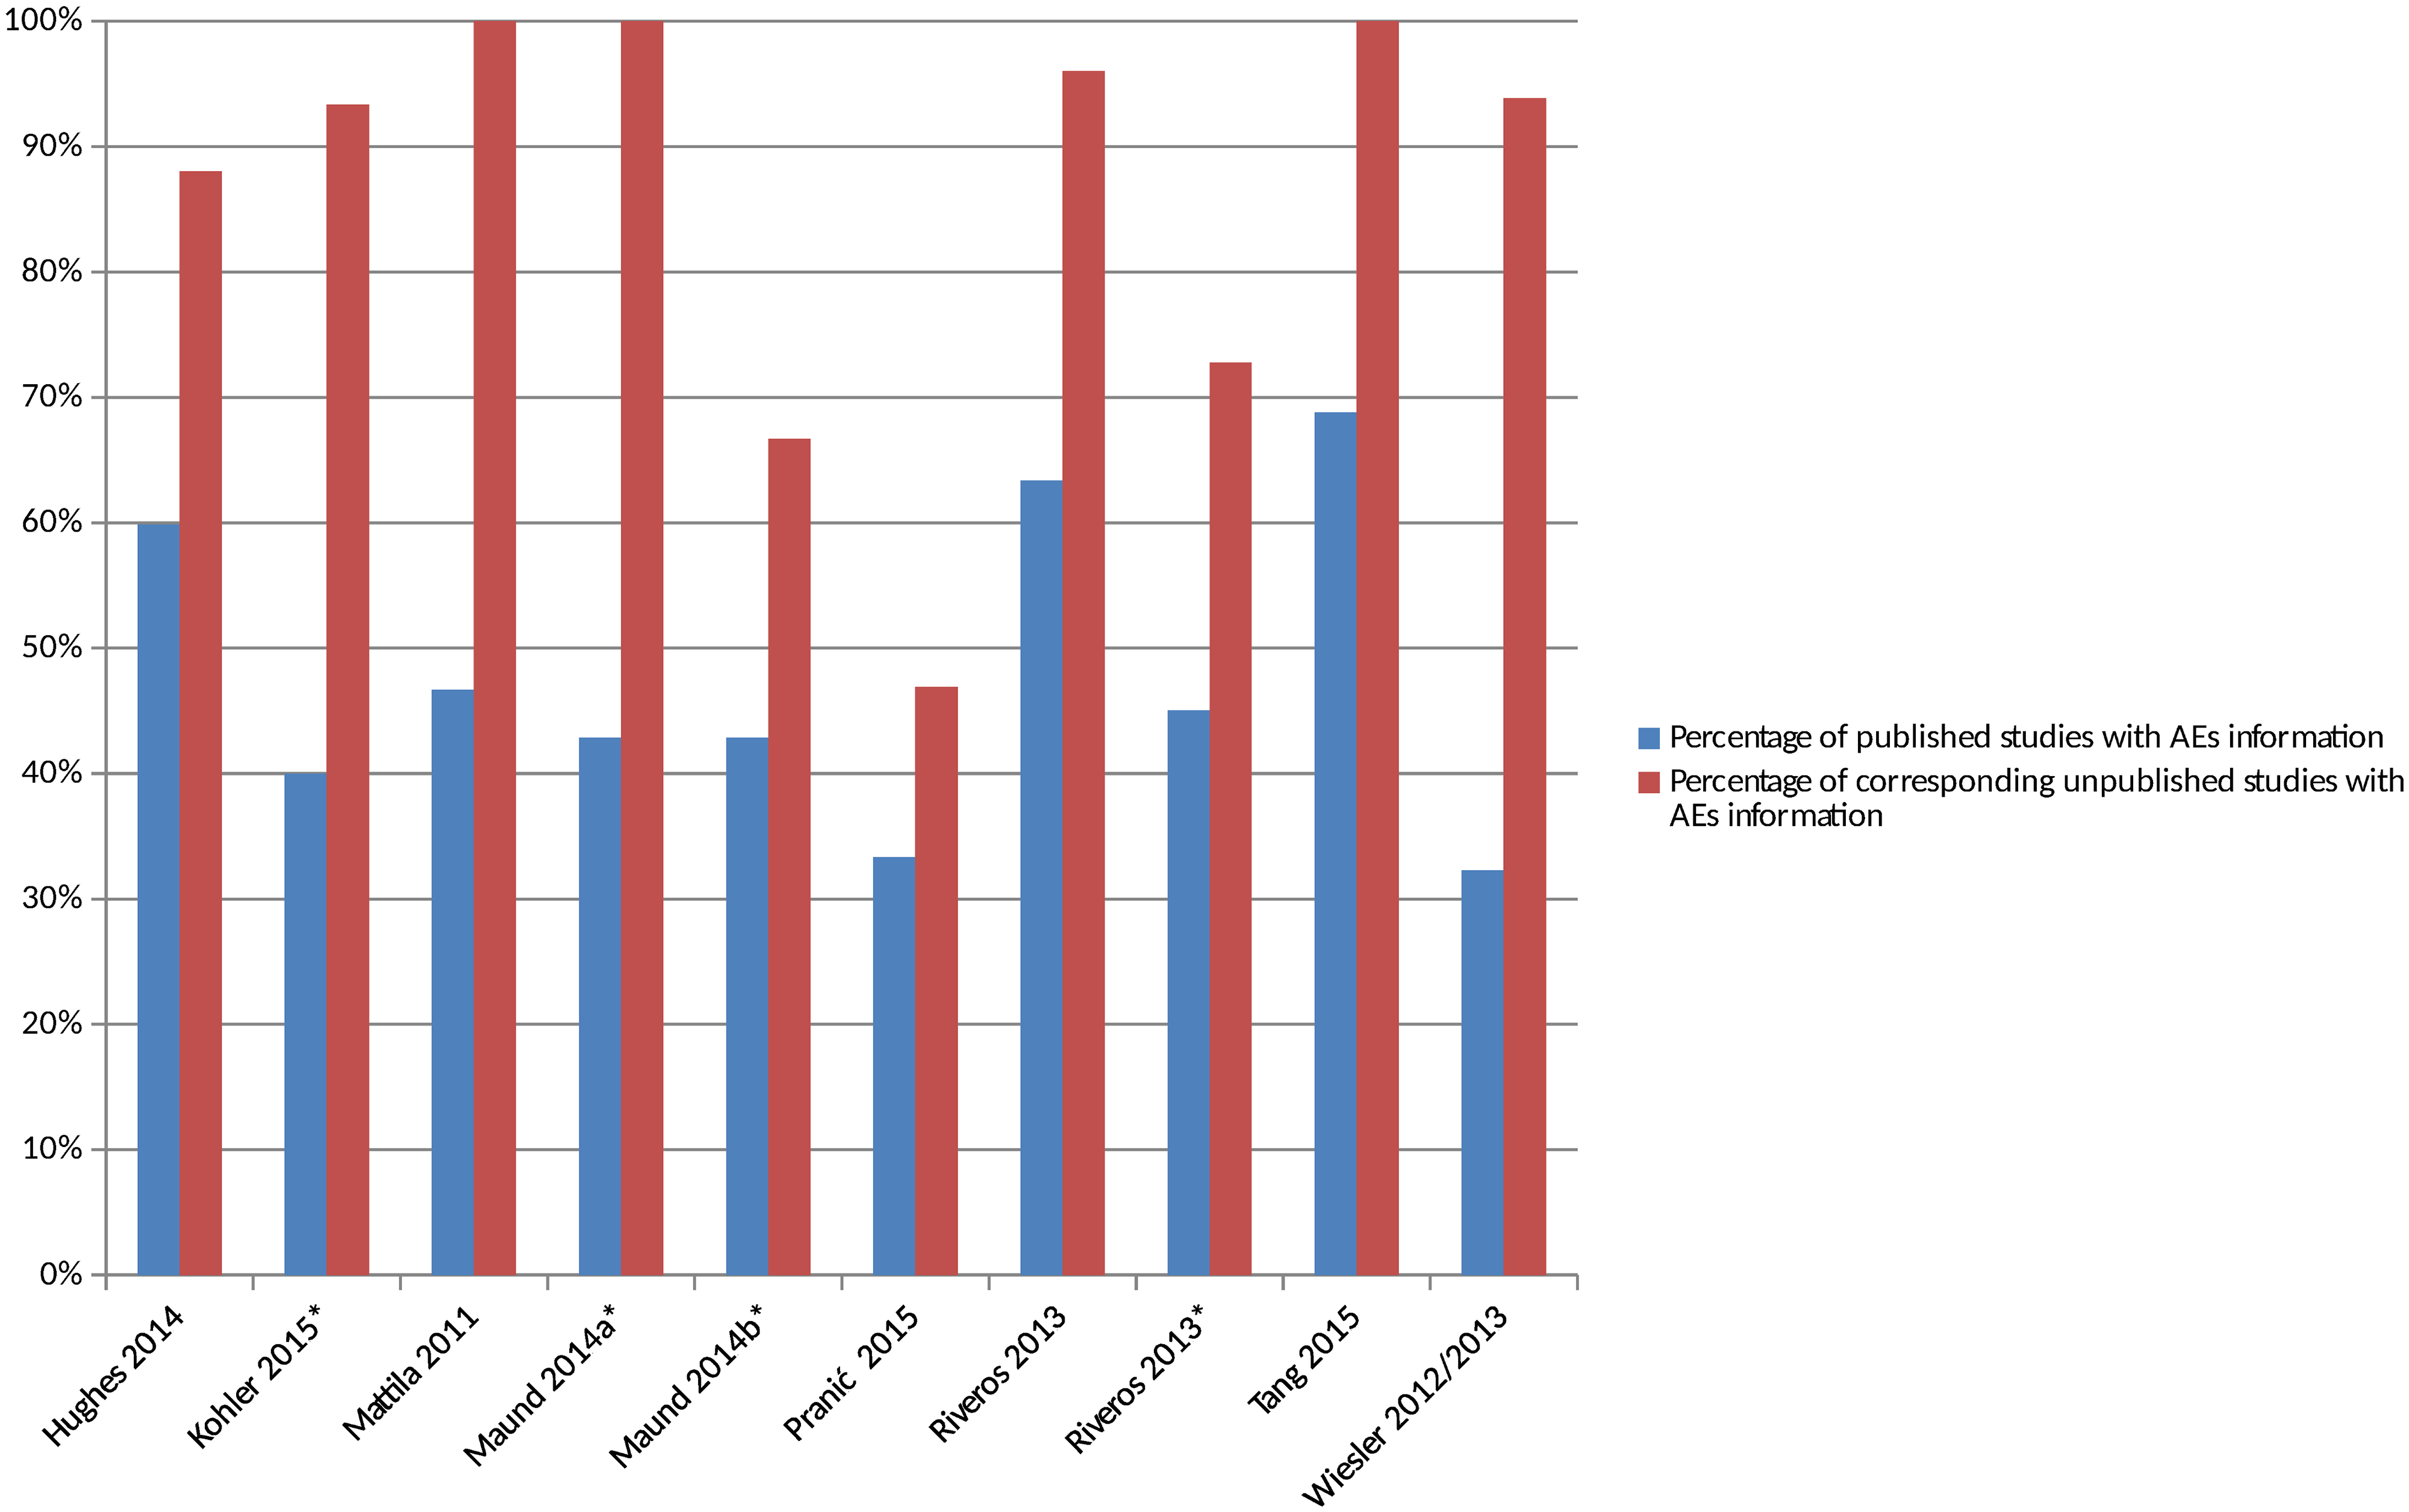 Percentage of matched published and unpublished studies with adverse event information.